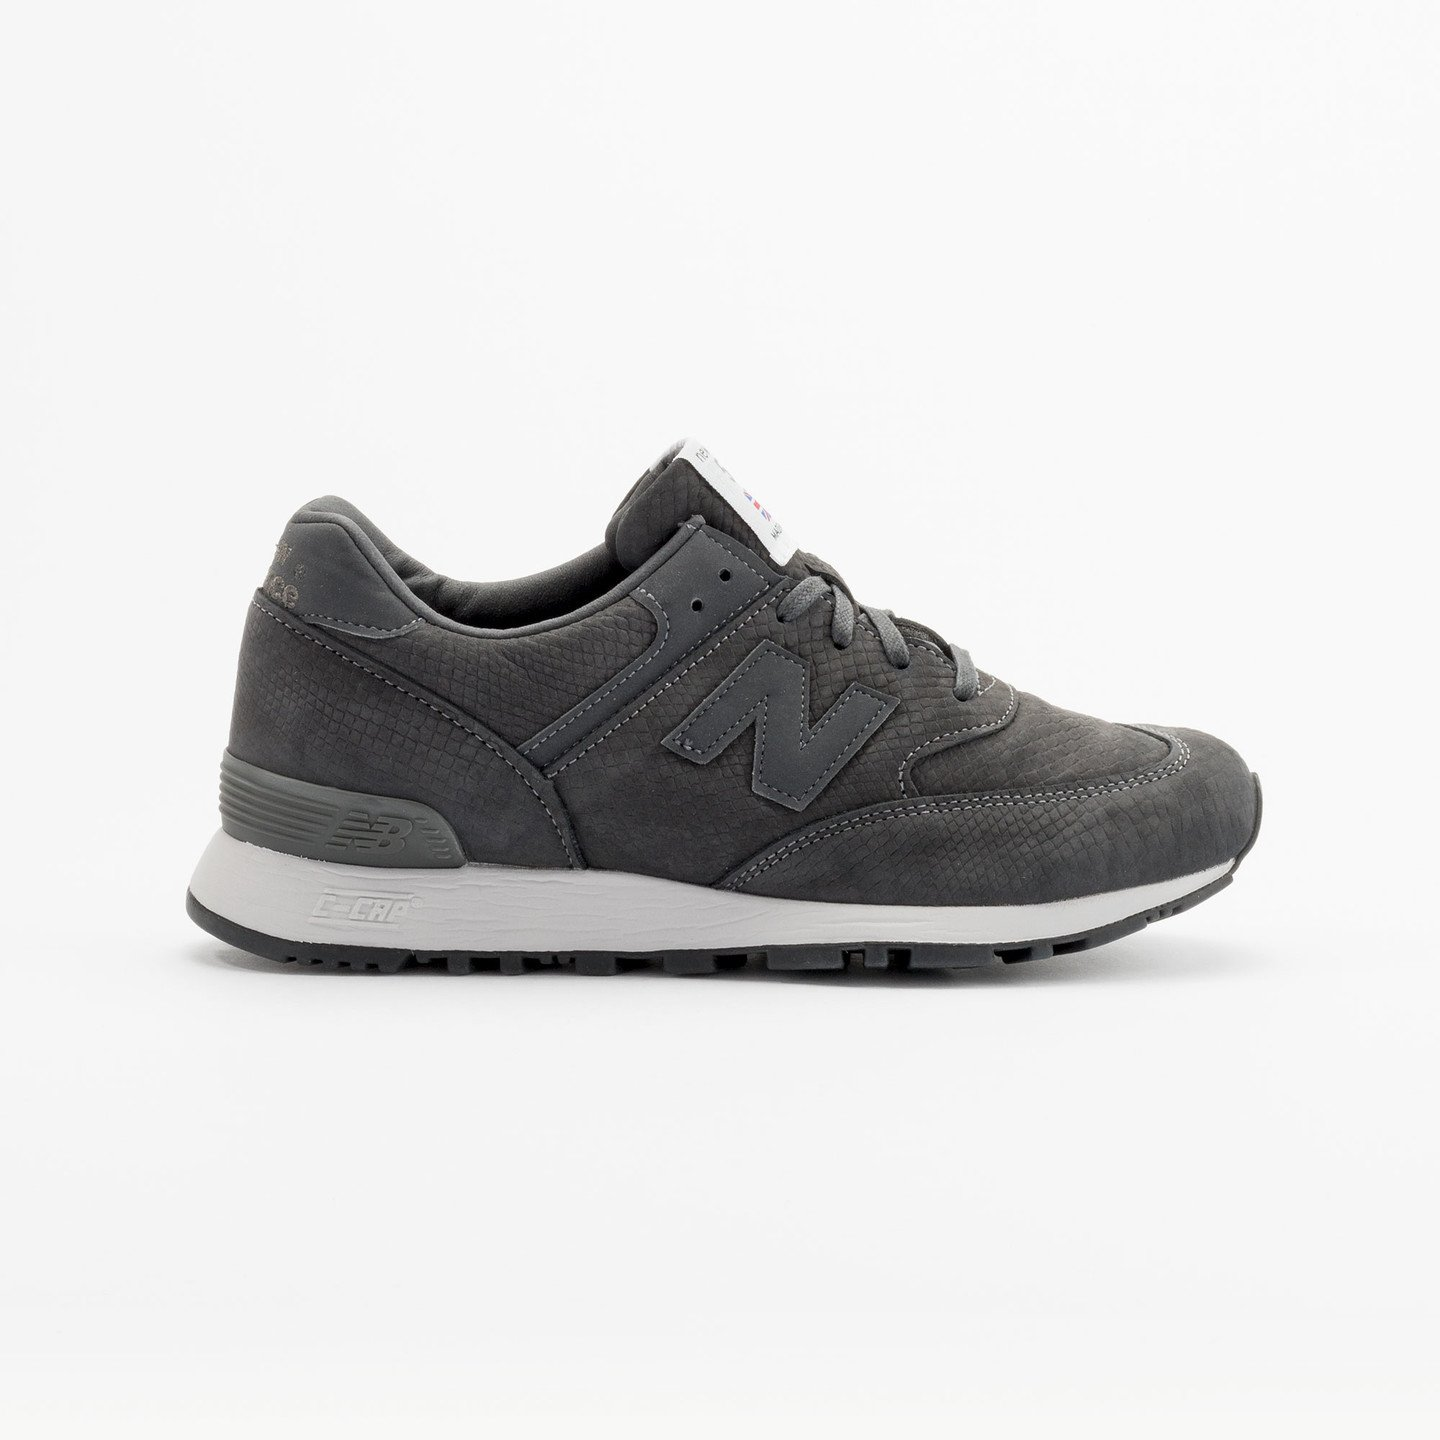 New Balance W576 NRG Made in England Dark Grey W576NRG-40.5